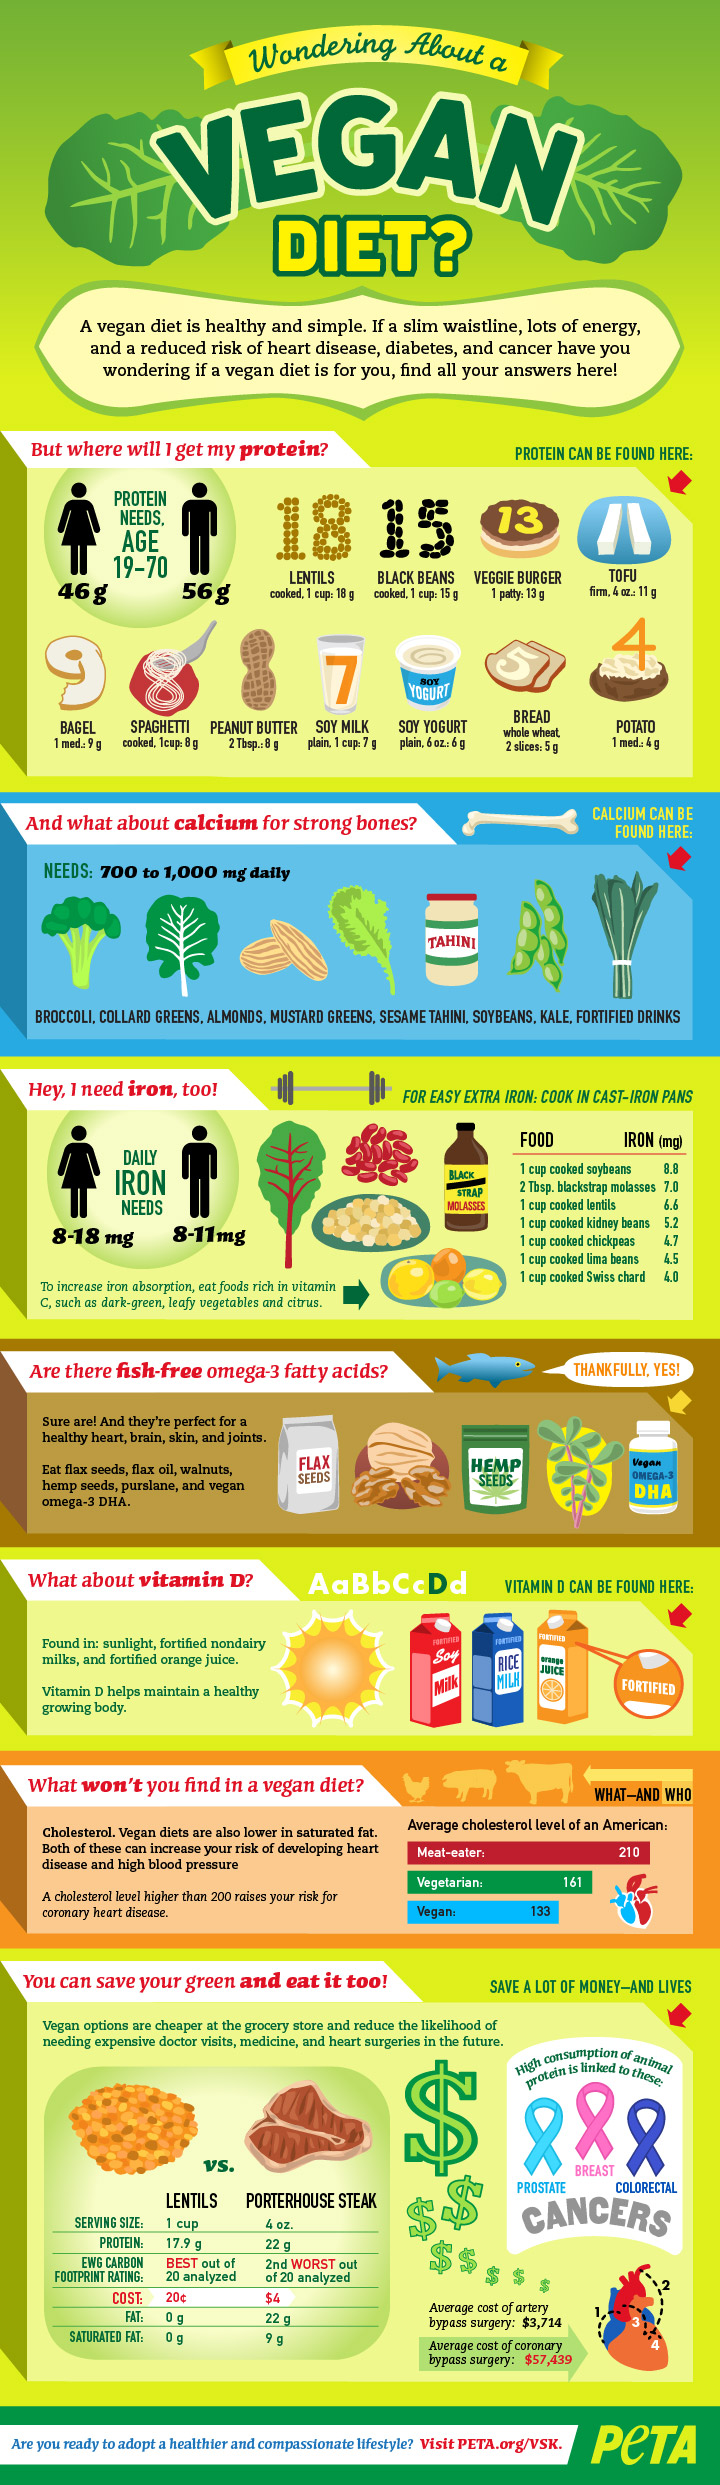 Wondering About a Vegan Diet?